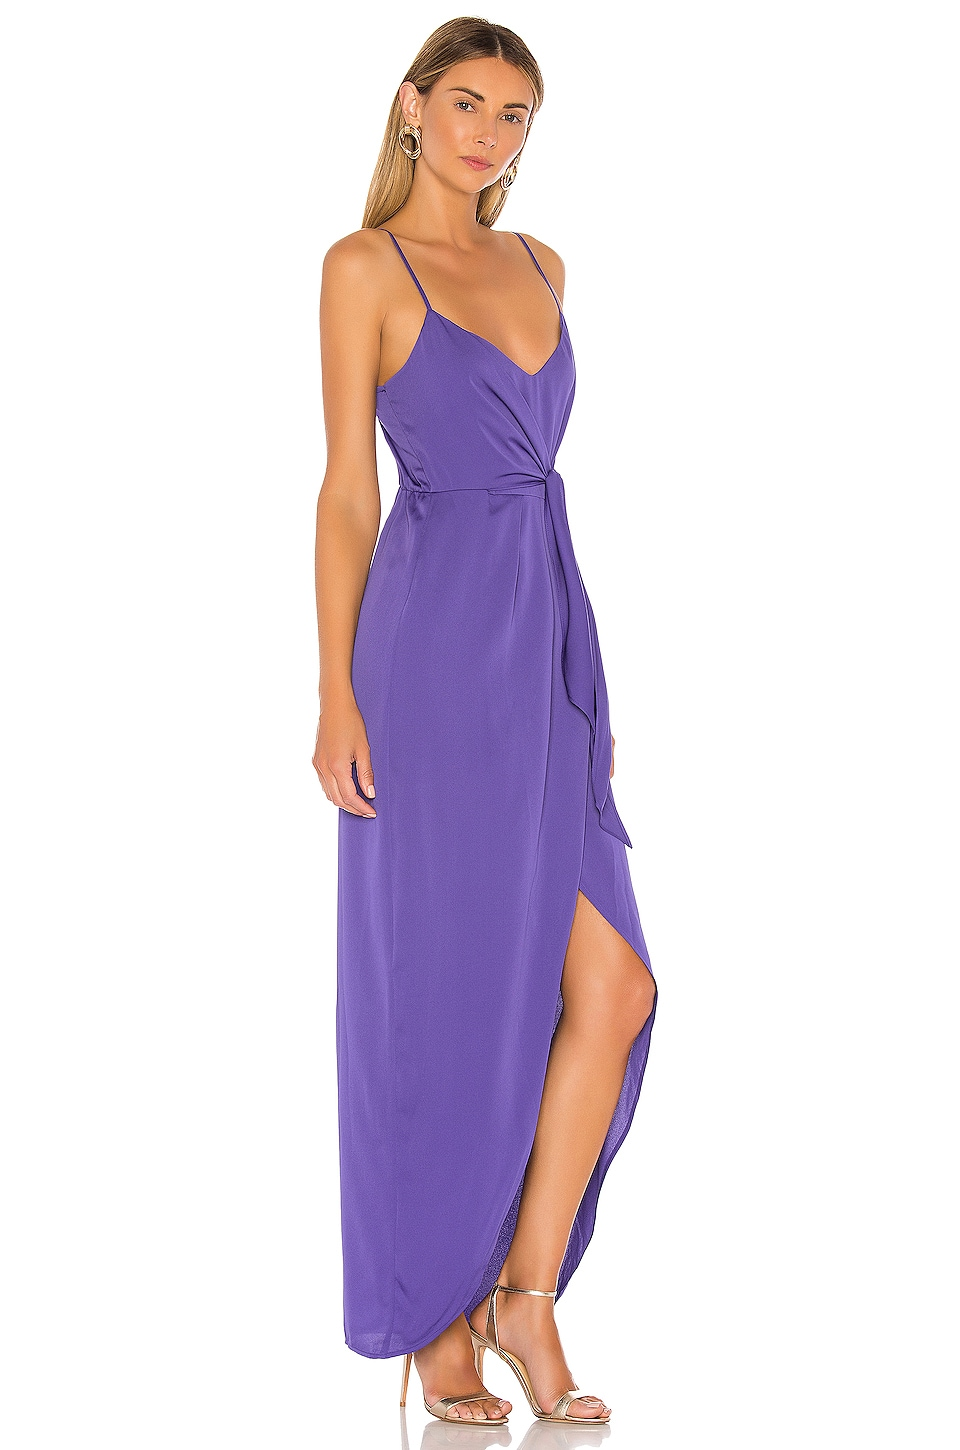 Tie Wrap Maxi Dress, view 2, click to view large image.